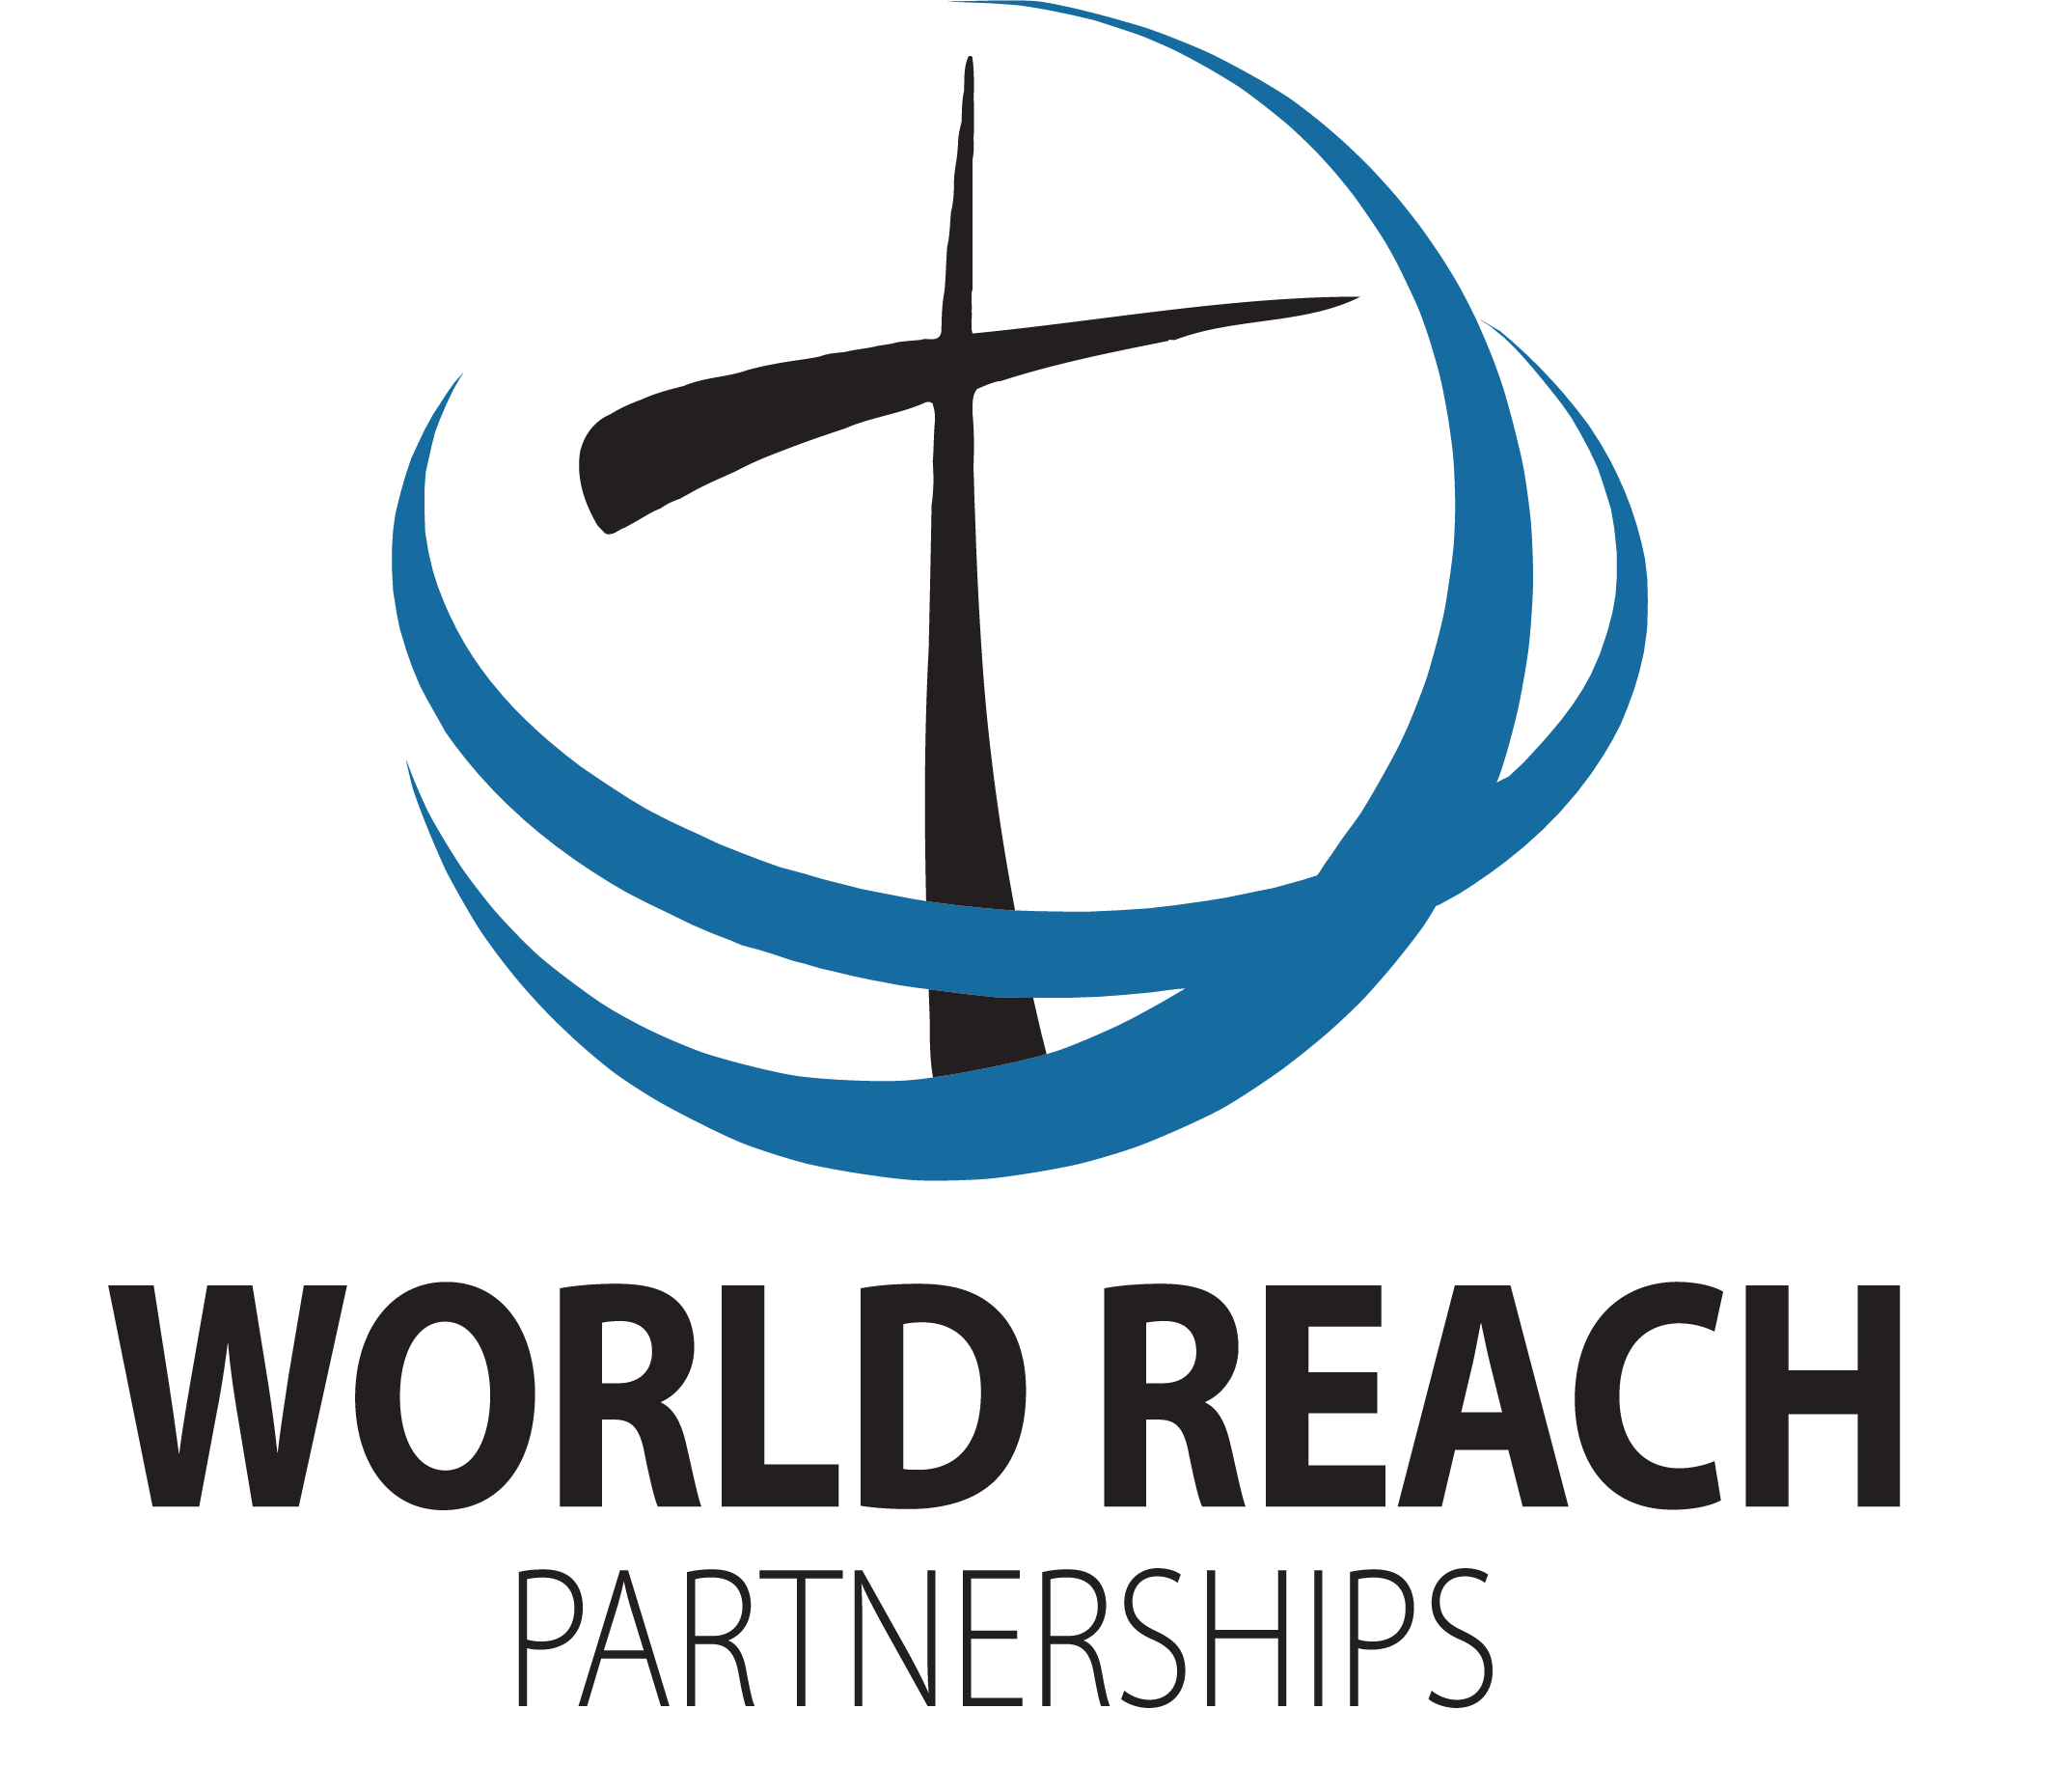 World Reach